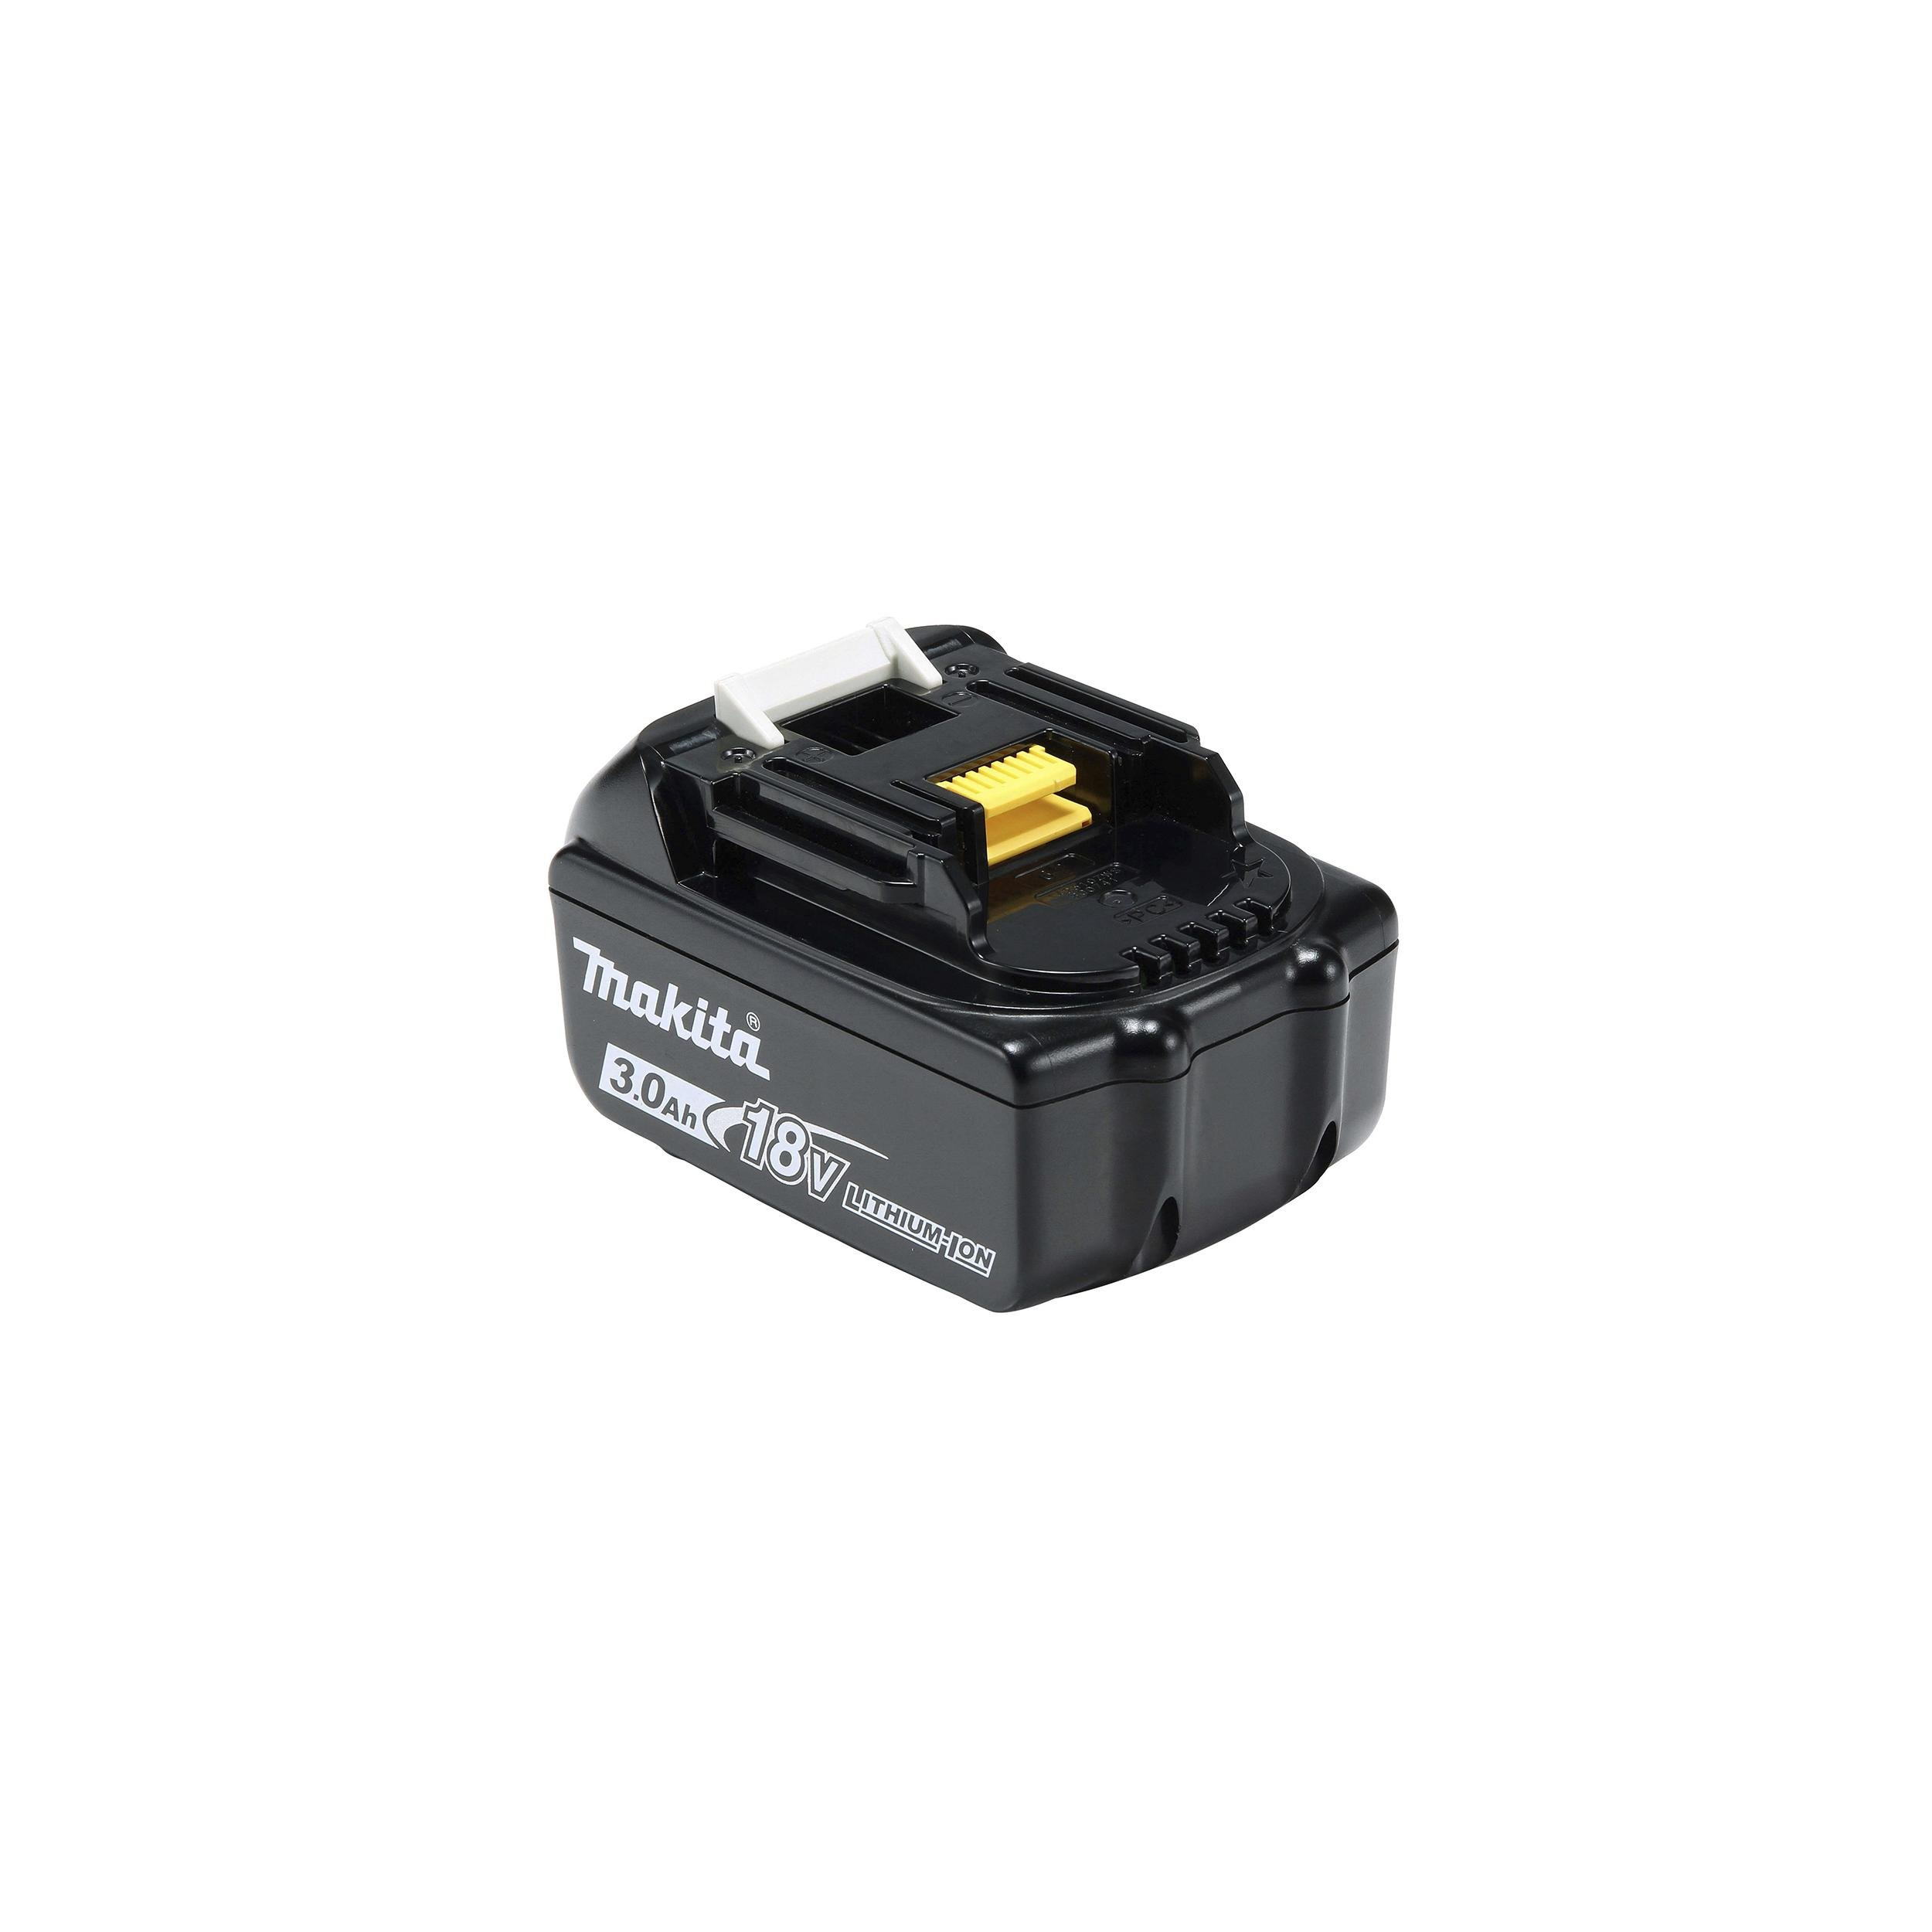 Makita BL1830 18-Volt LXT Lithium-Ion Battery (Discontinued by Manufacturer) (Discontinued by Manufacturer) by Makita